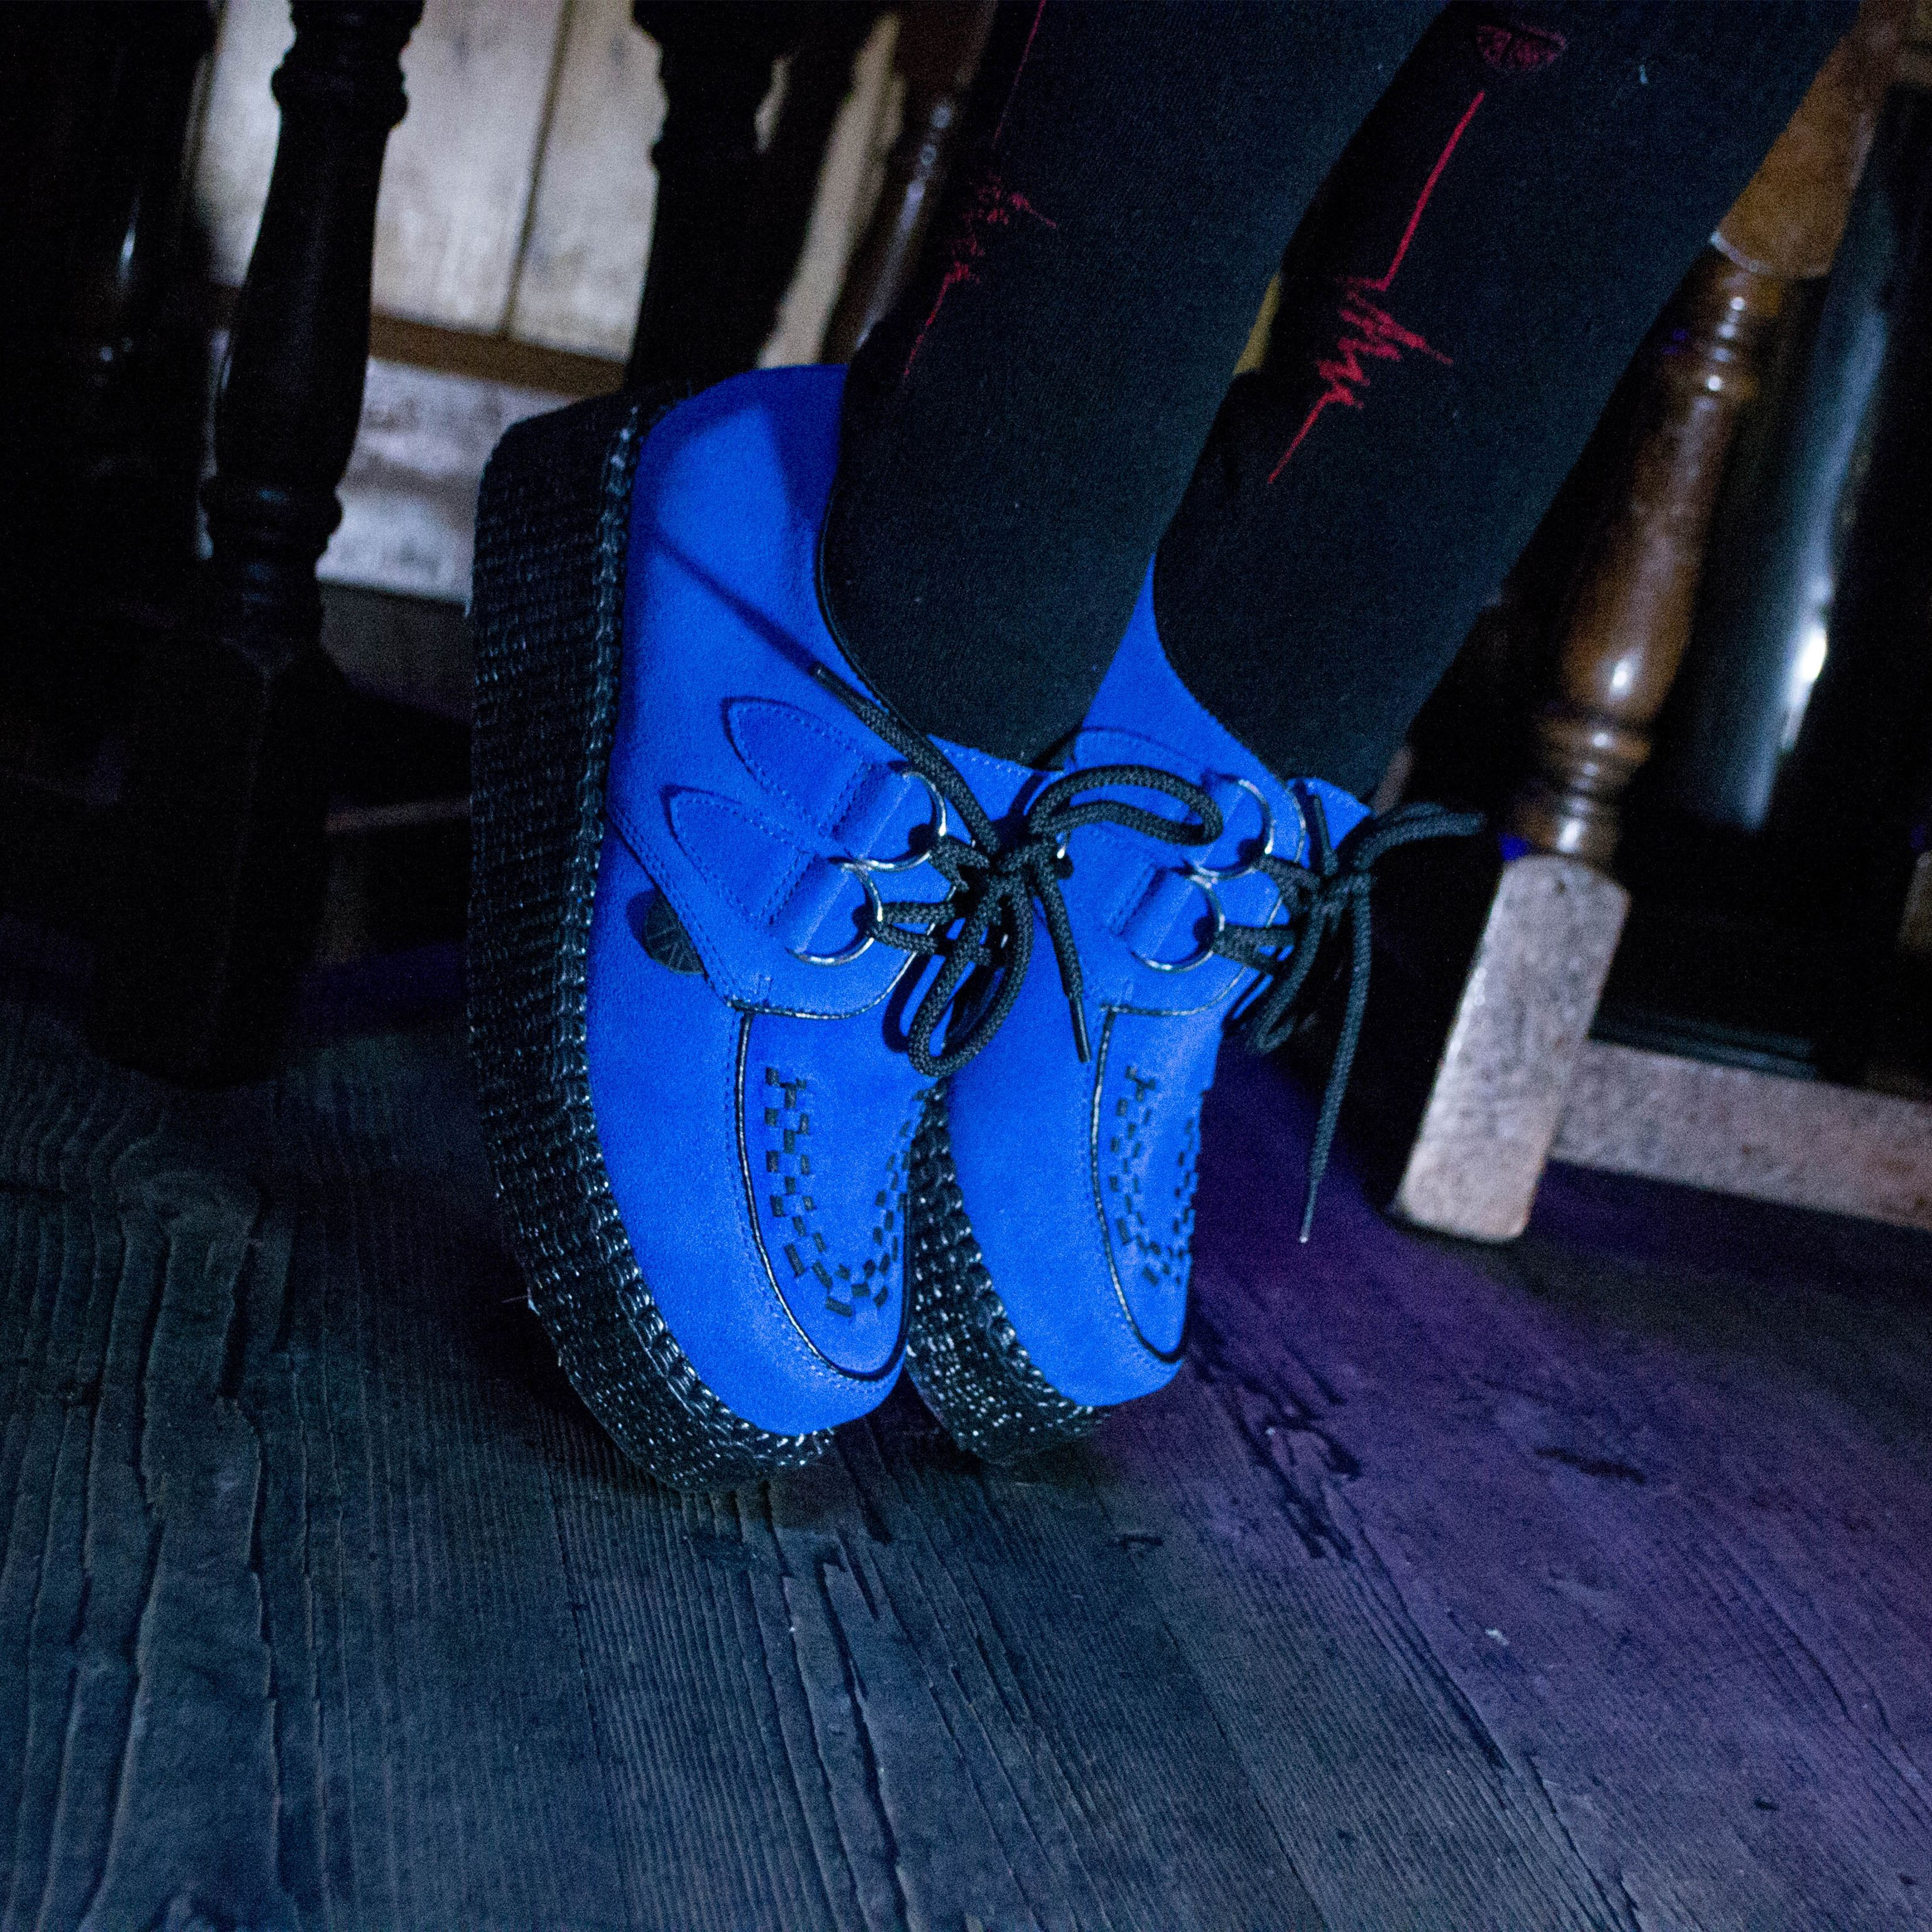 c304f5a1a2bdc The Original Wulfrun Creeper- blue suede shoes of course. Available in an  array of